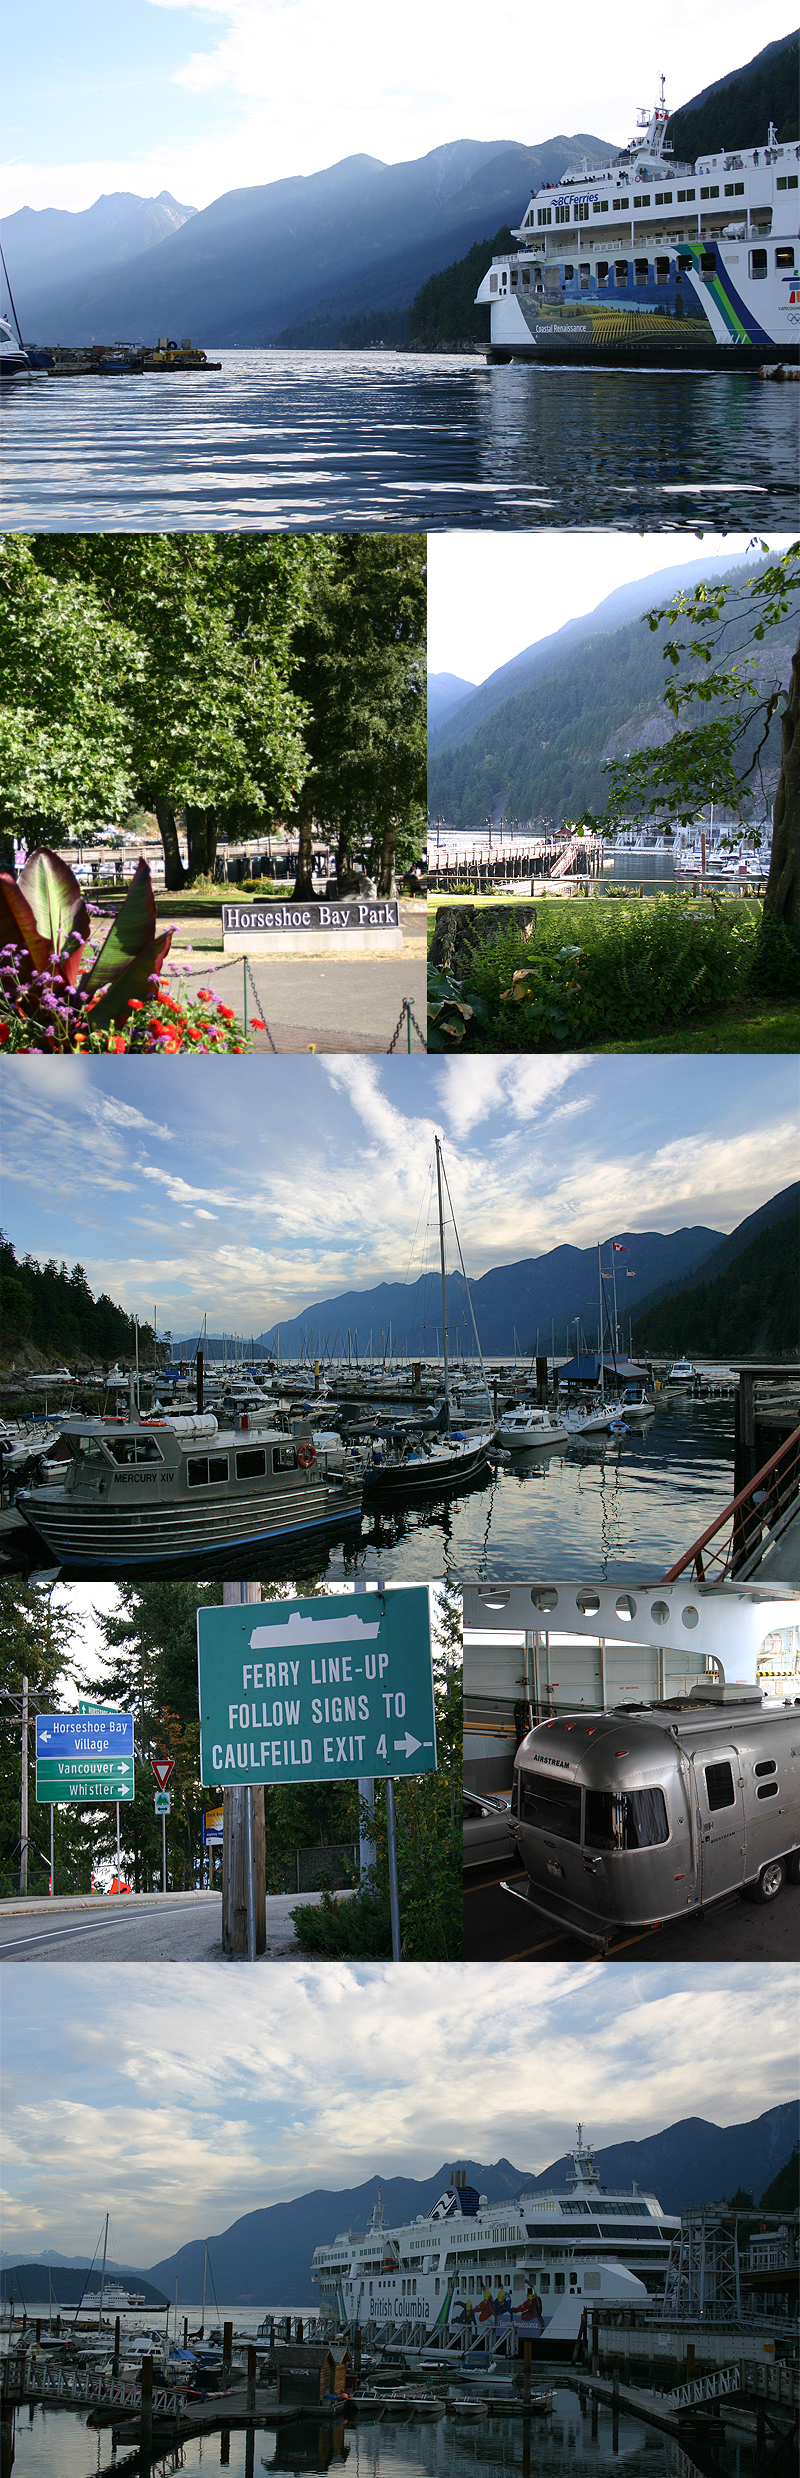 Horseshoe Bay, Vancouver, British Columbia